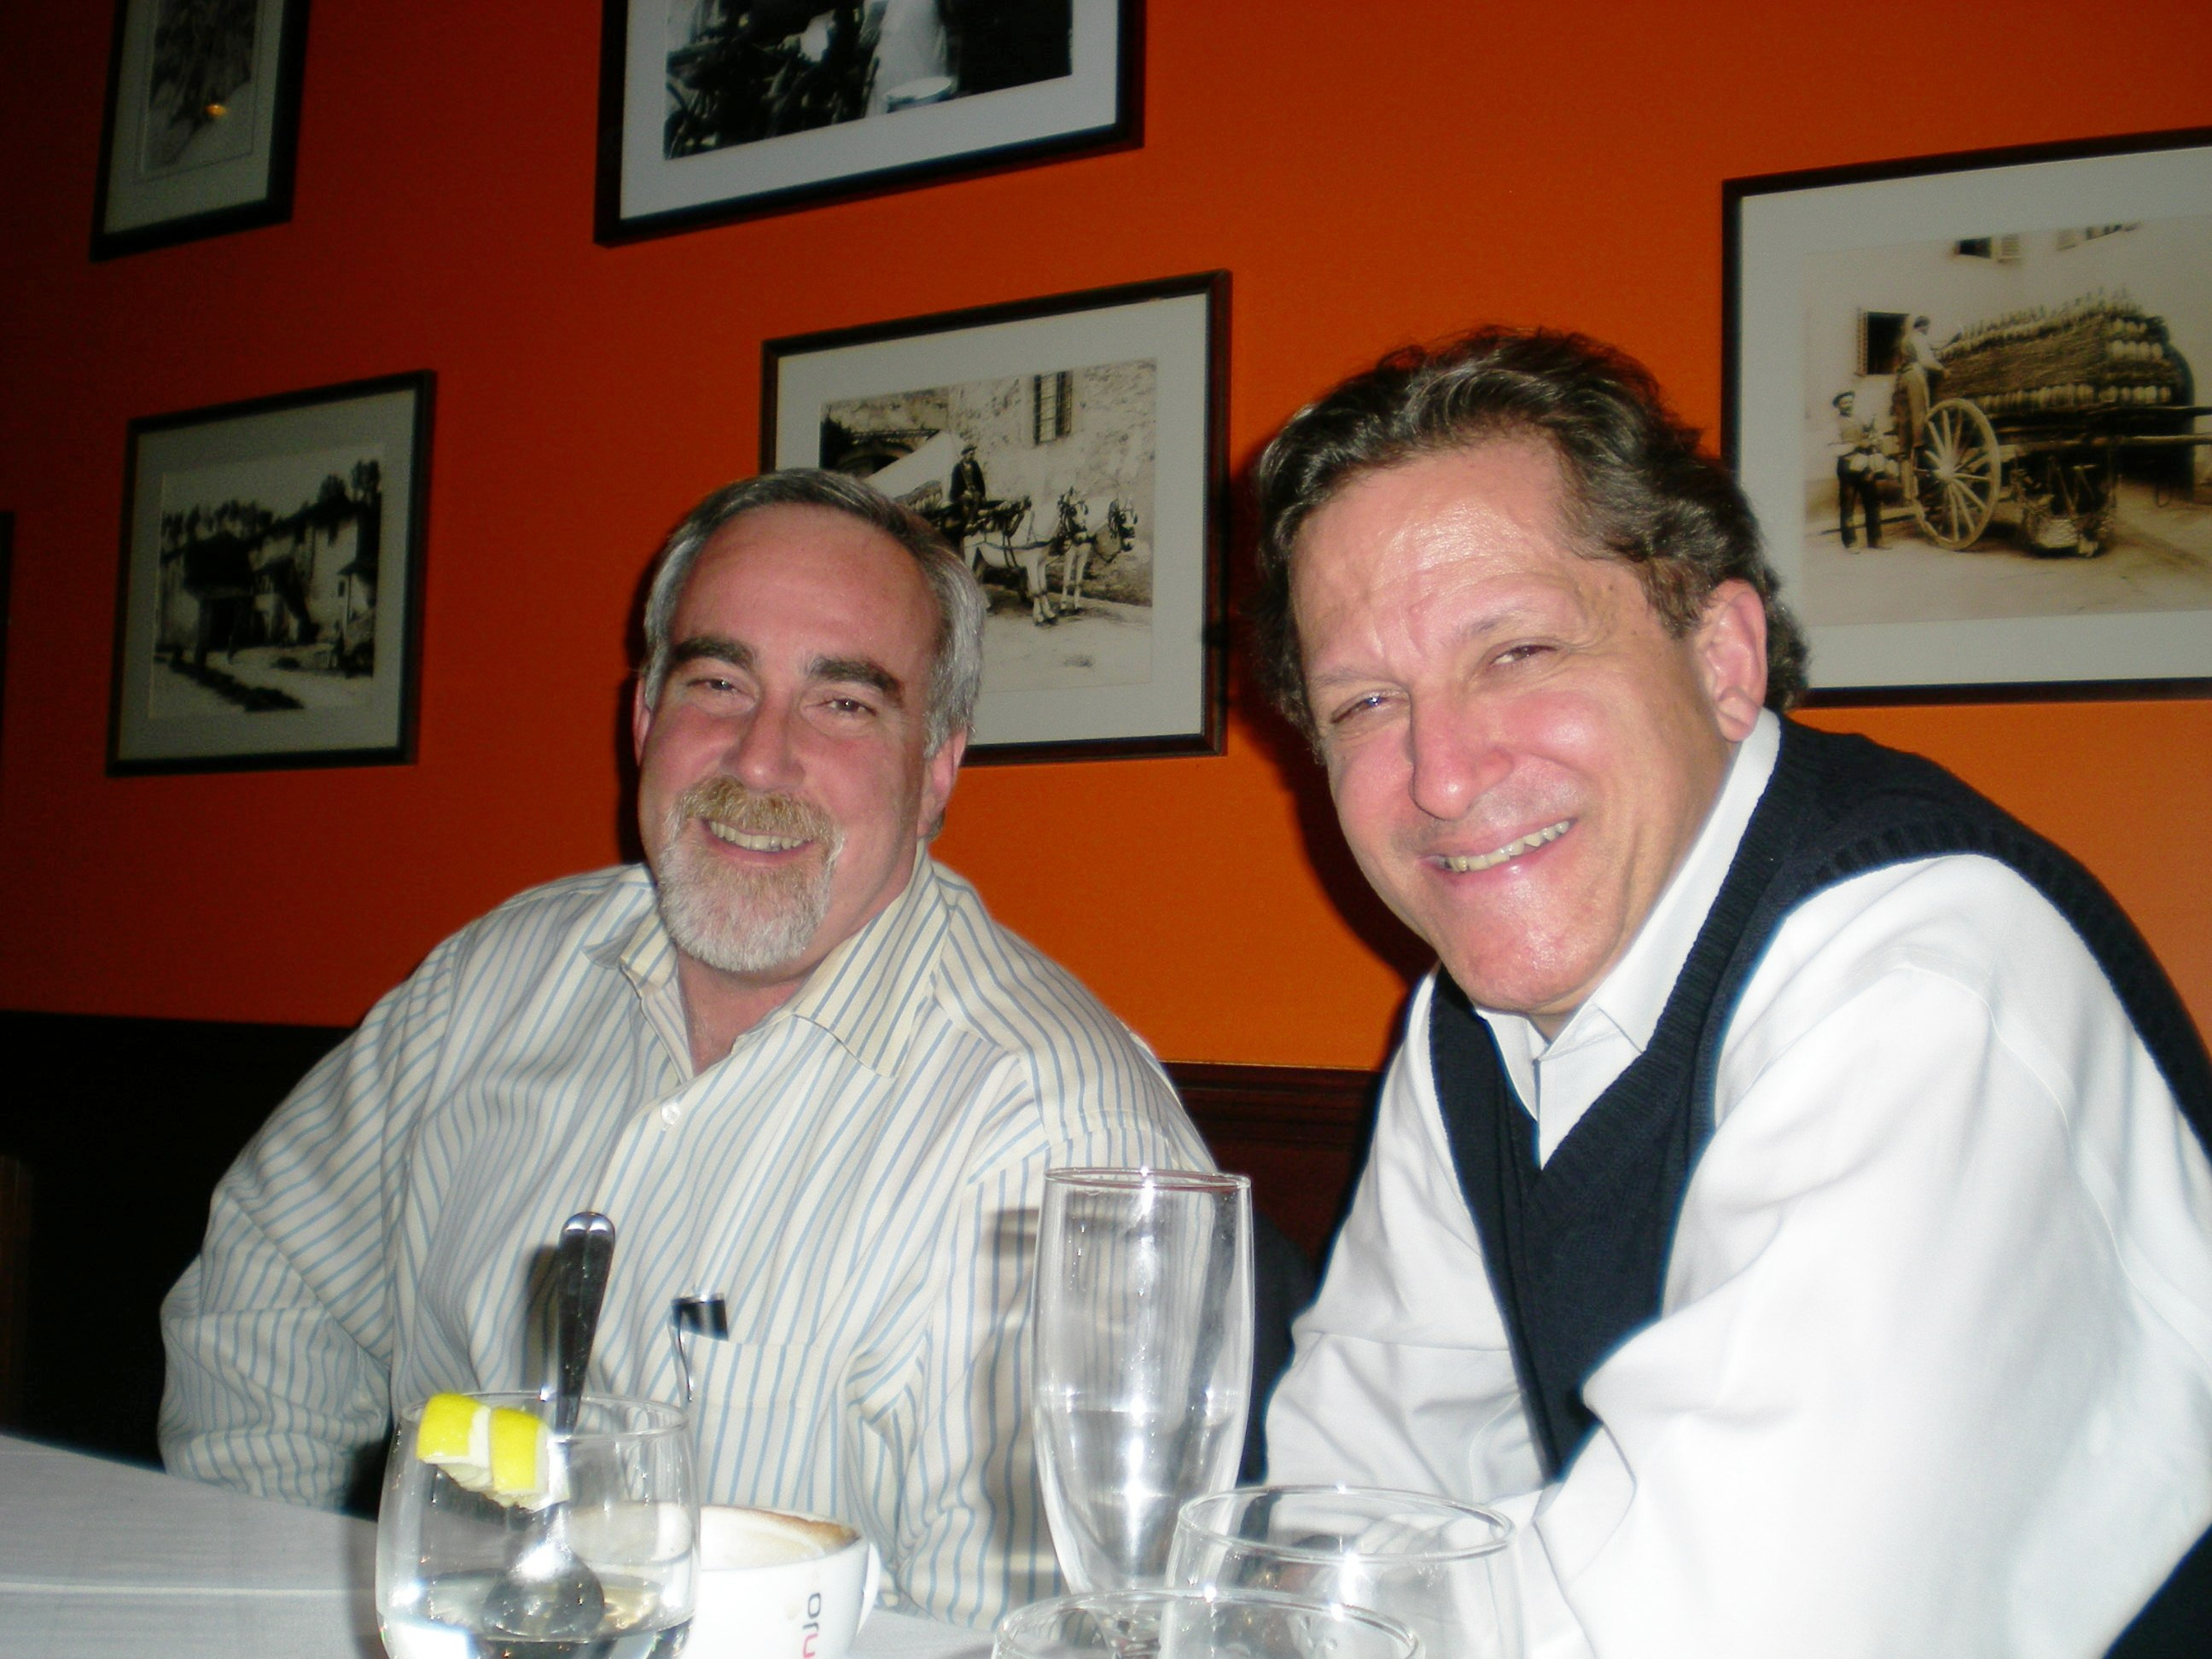 Lelio Patrizio and Larry Reina - Abruzzese brothers